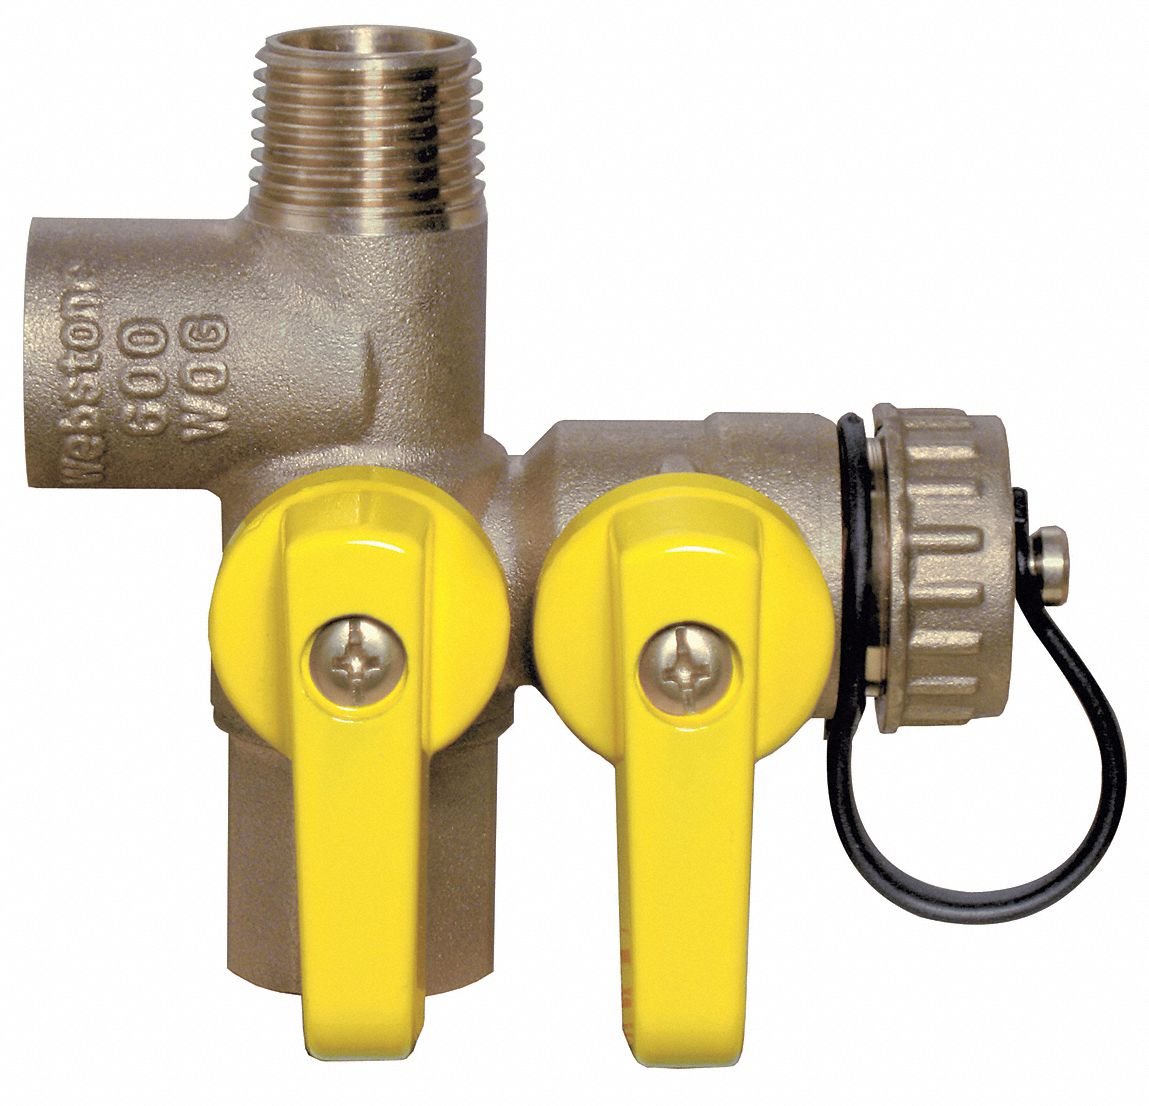 Purge And Fill Valves